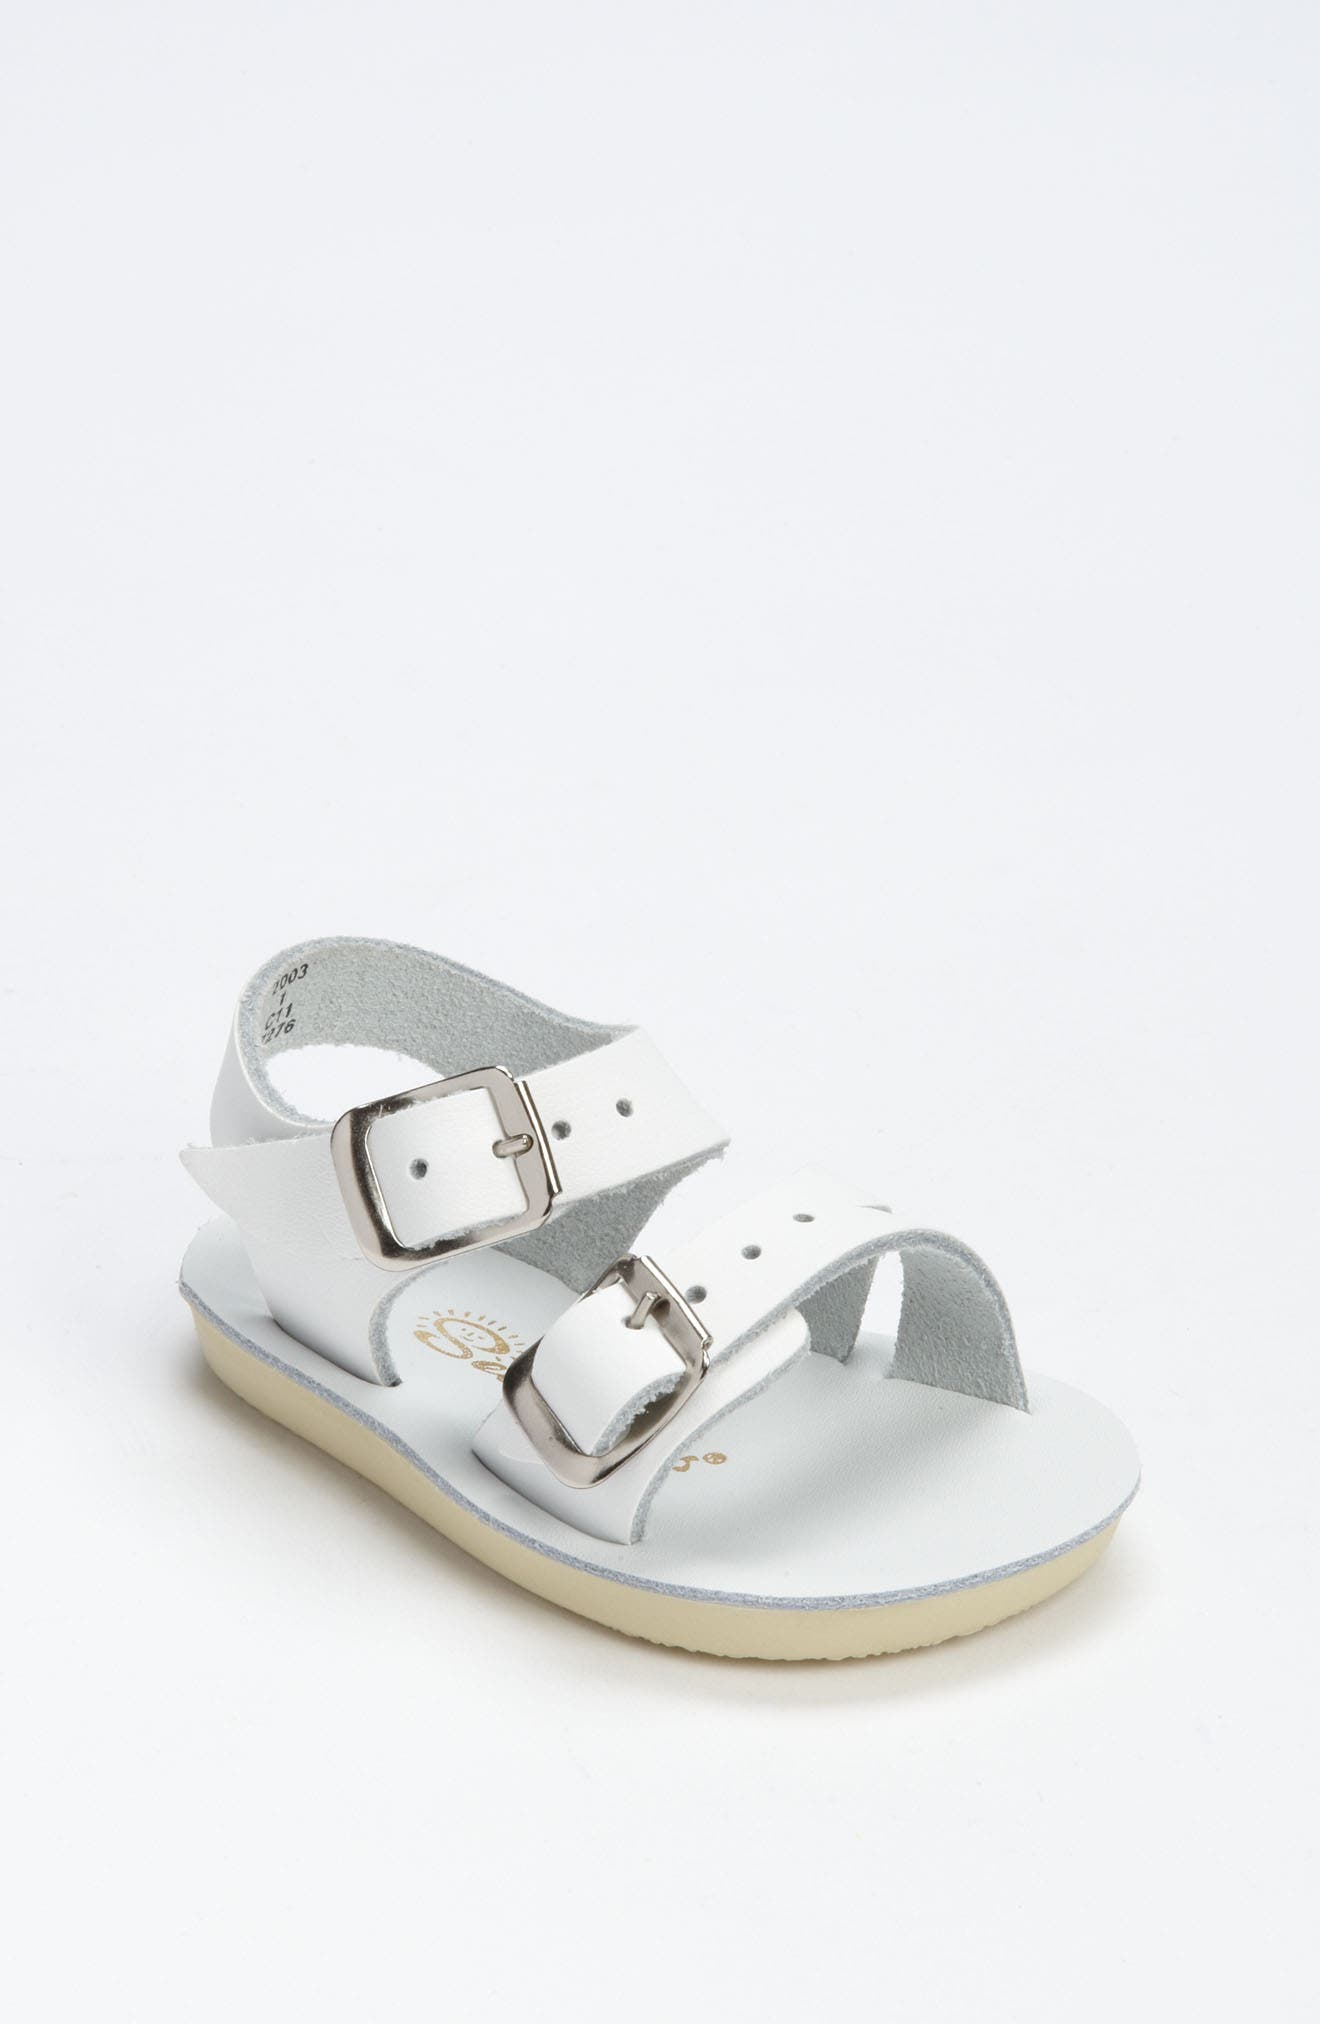 SALT WATER SANDALS BY HOY,                             Sea Wee Water Friendly Sandal,                             Main thumbnail 1, color,                             WHITE